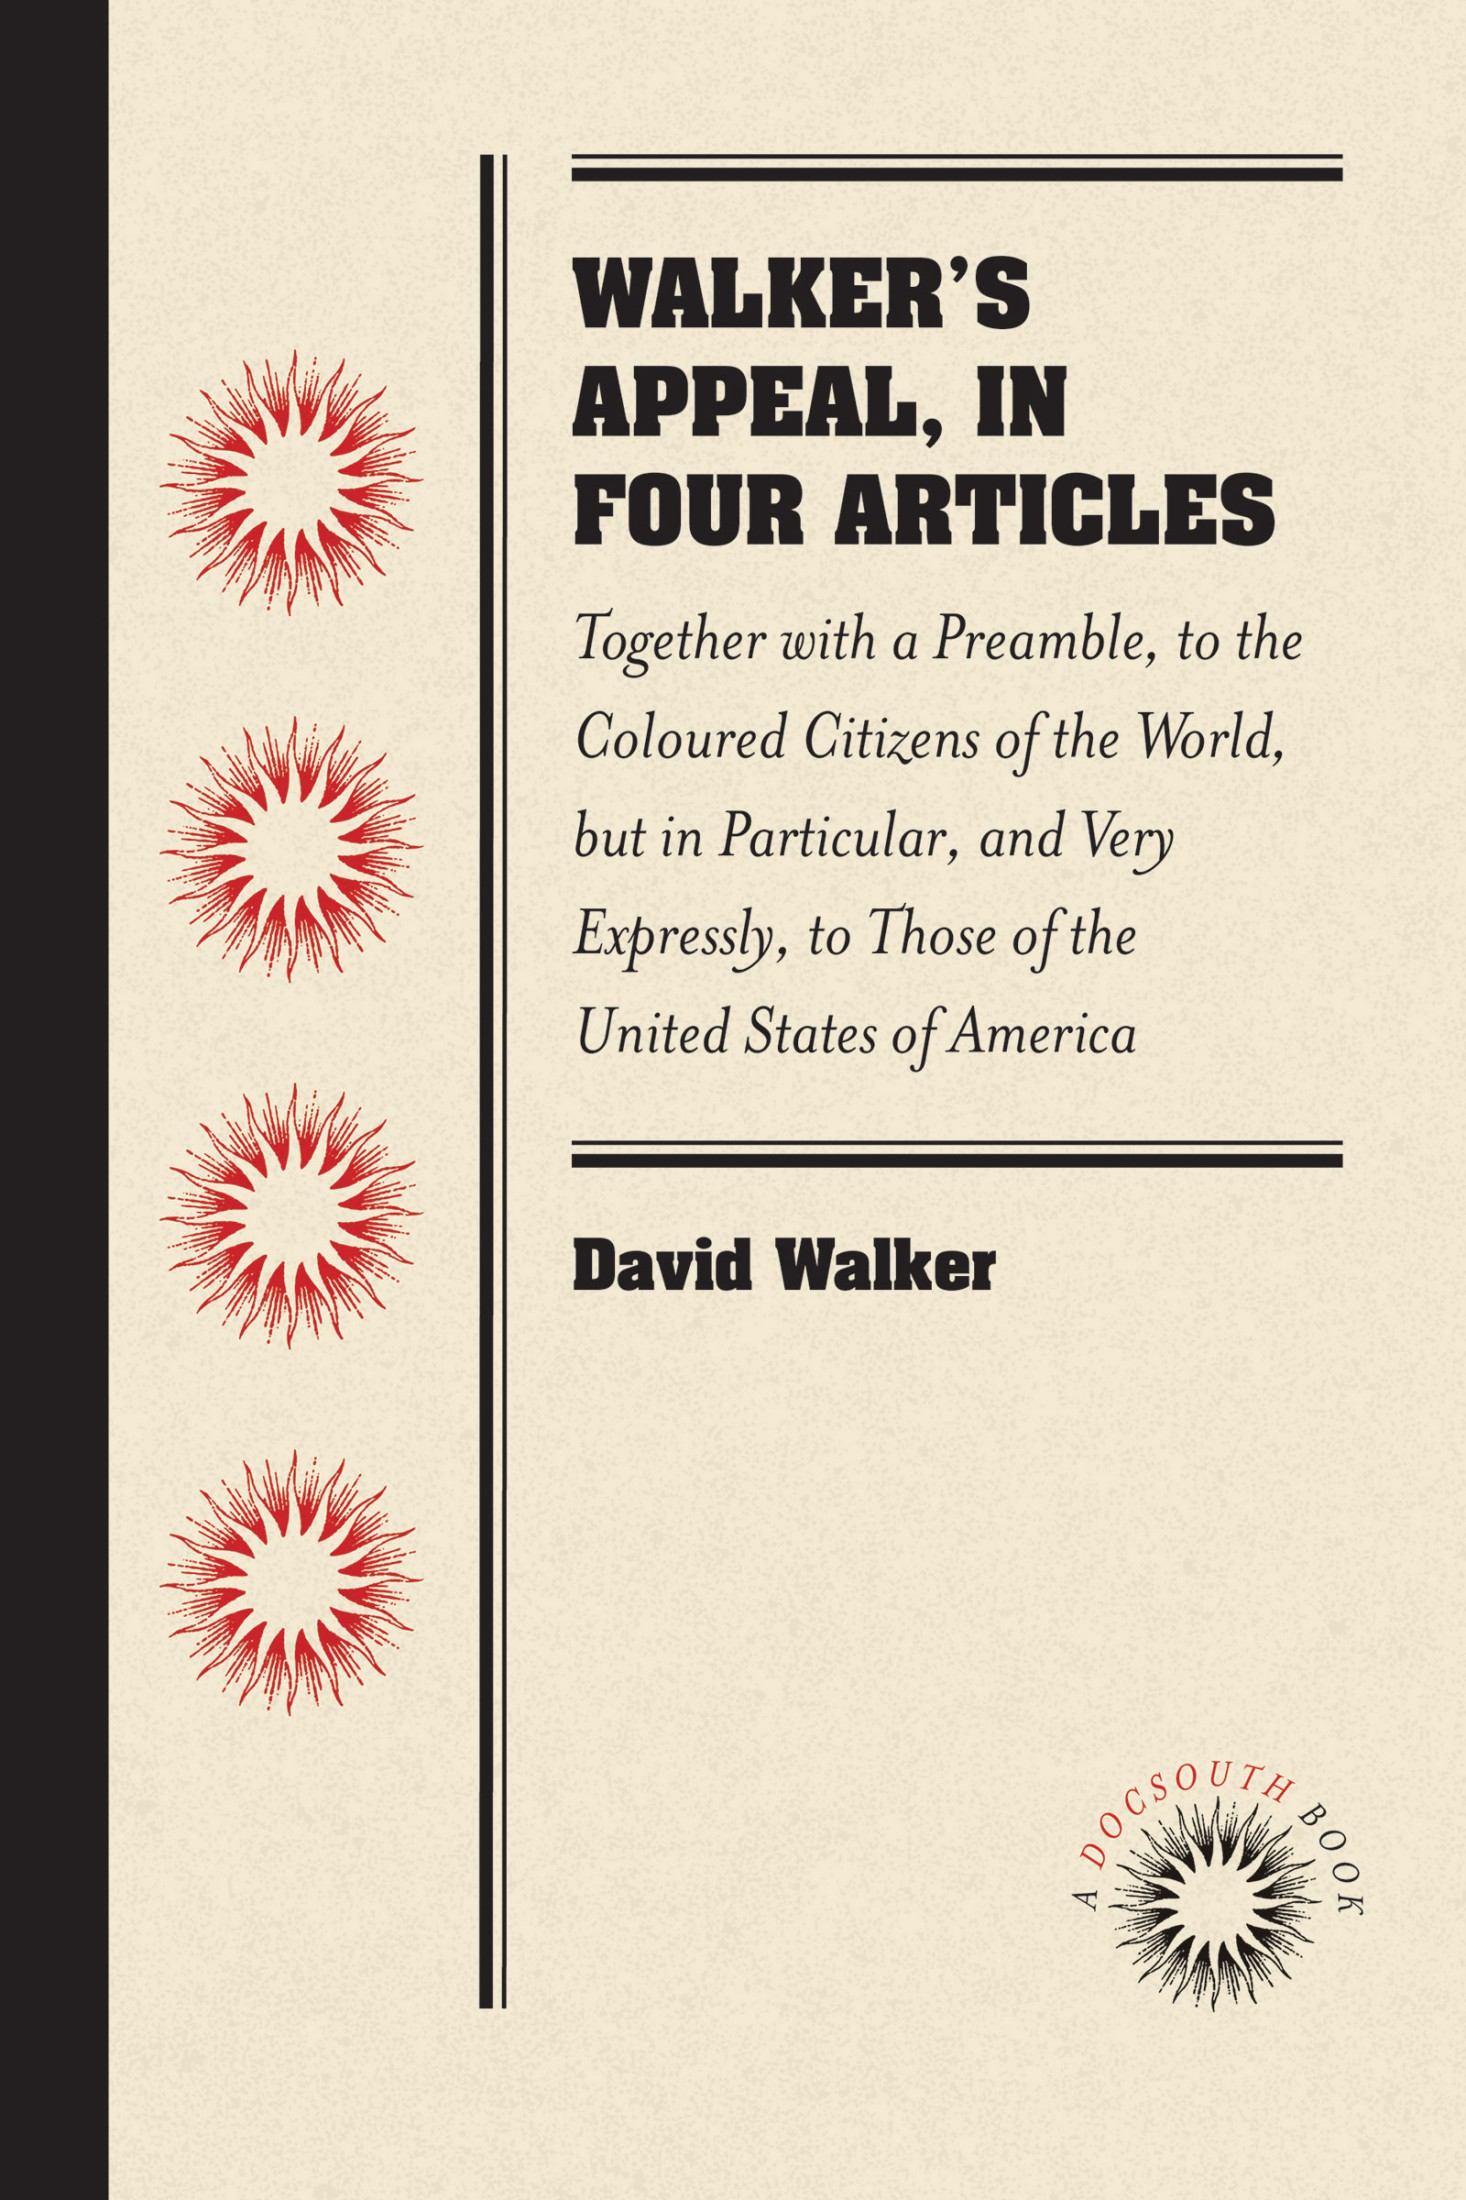 Walker's Appeal, in Four Articles